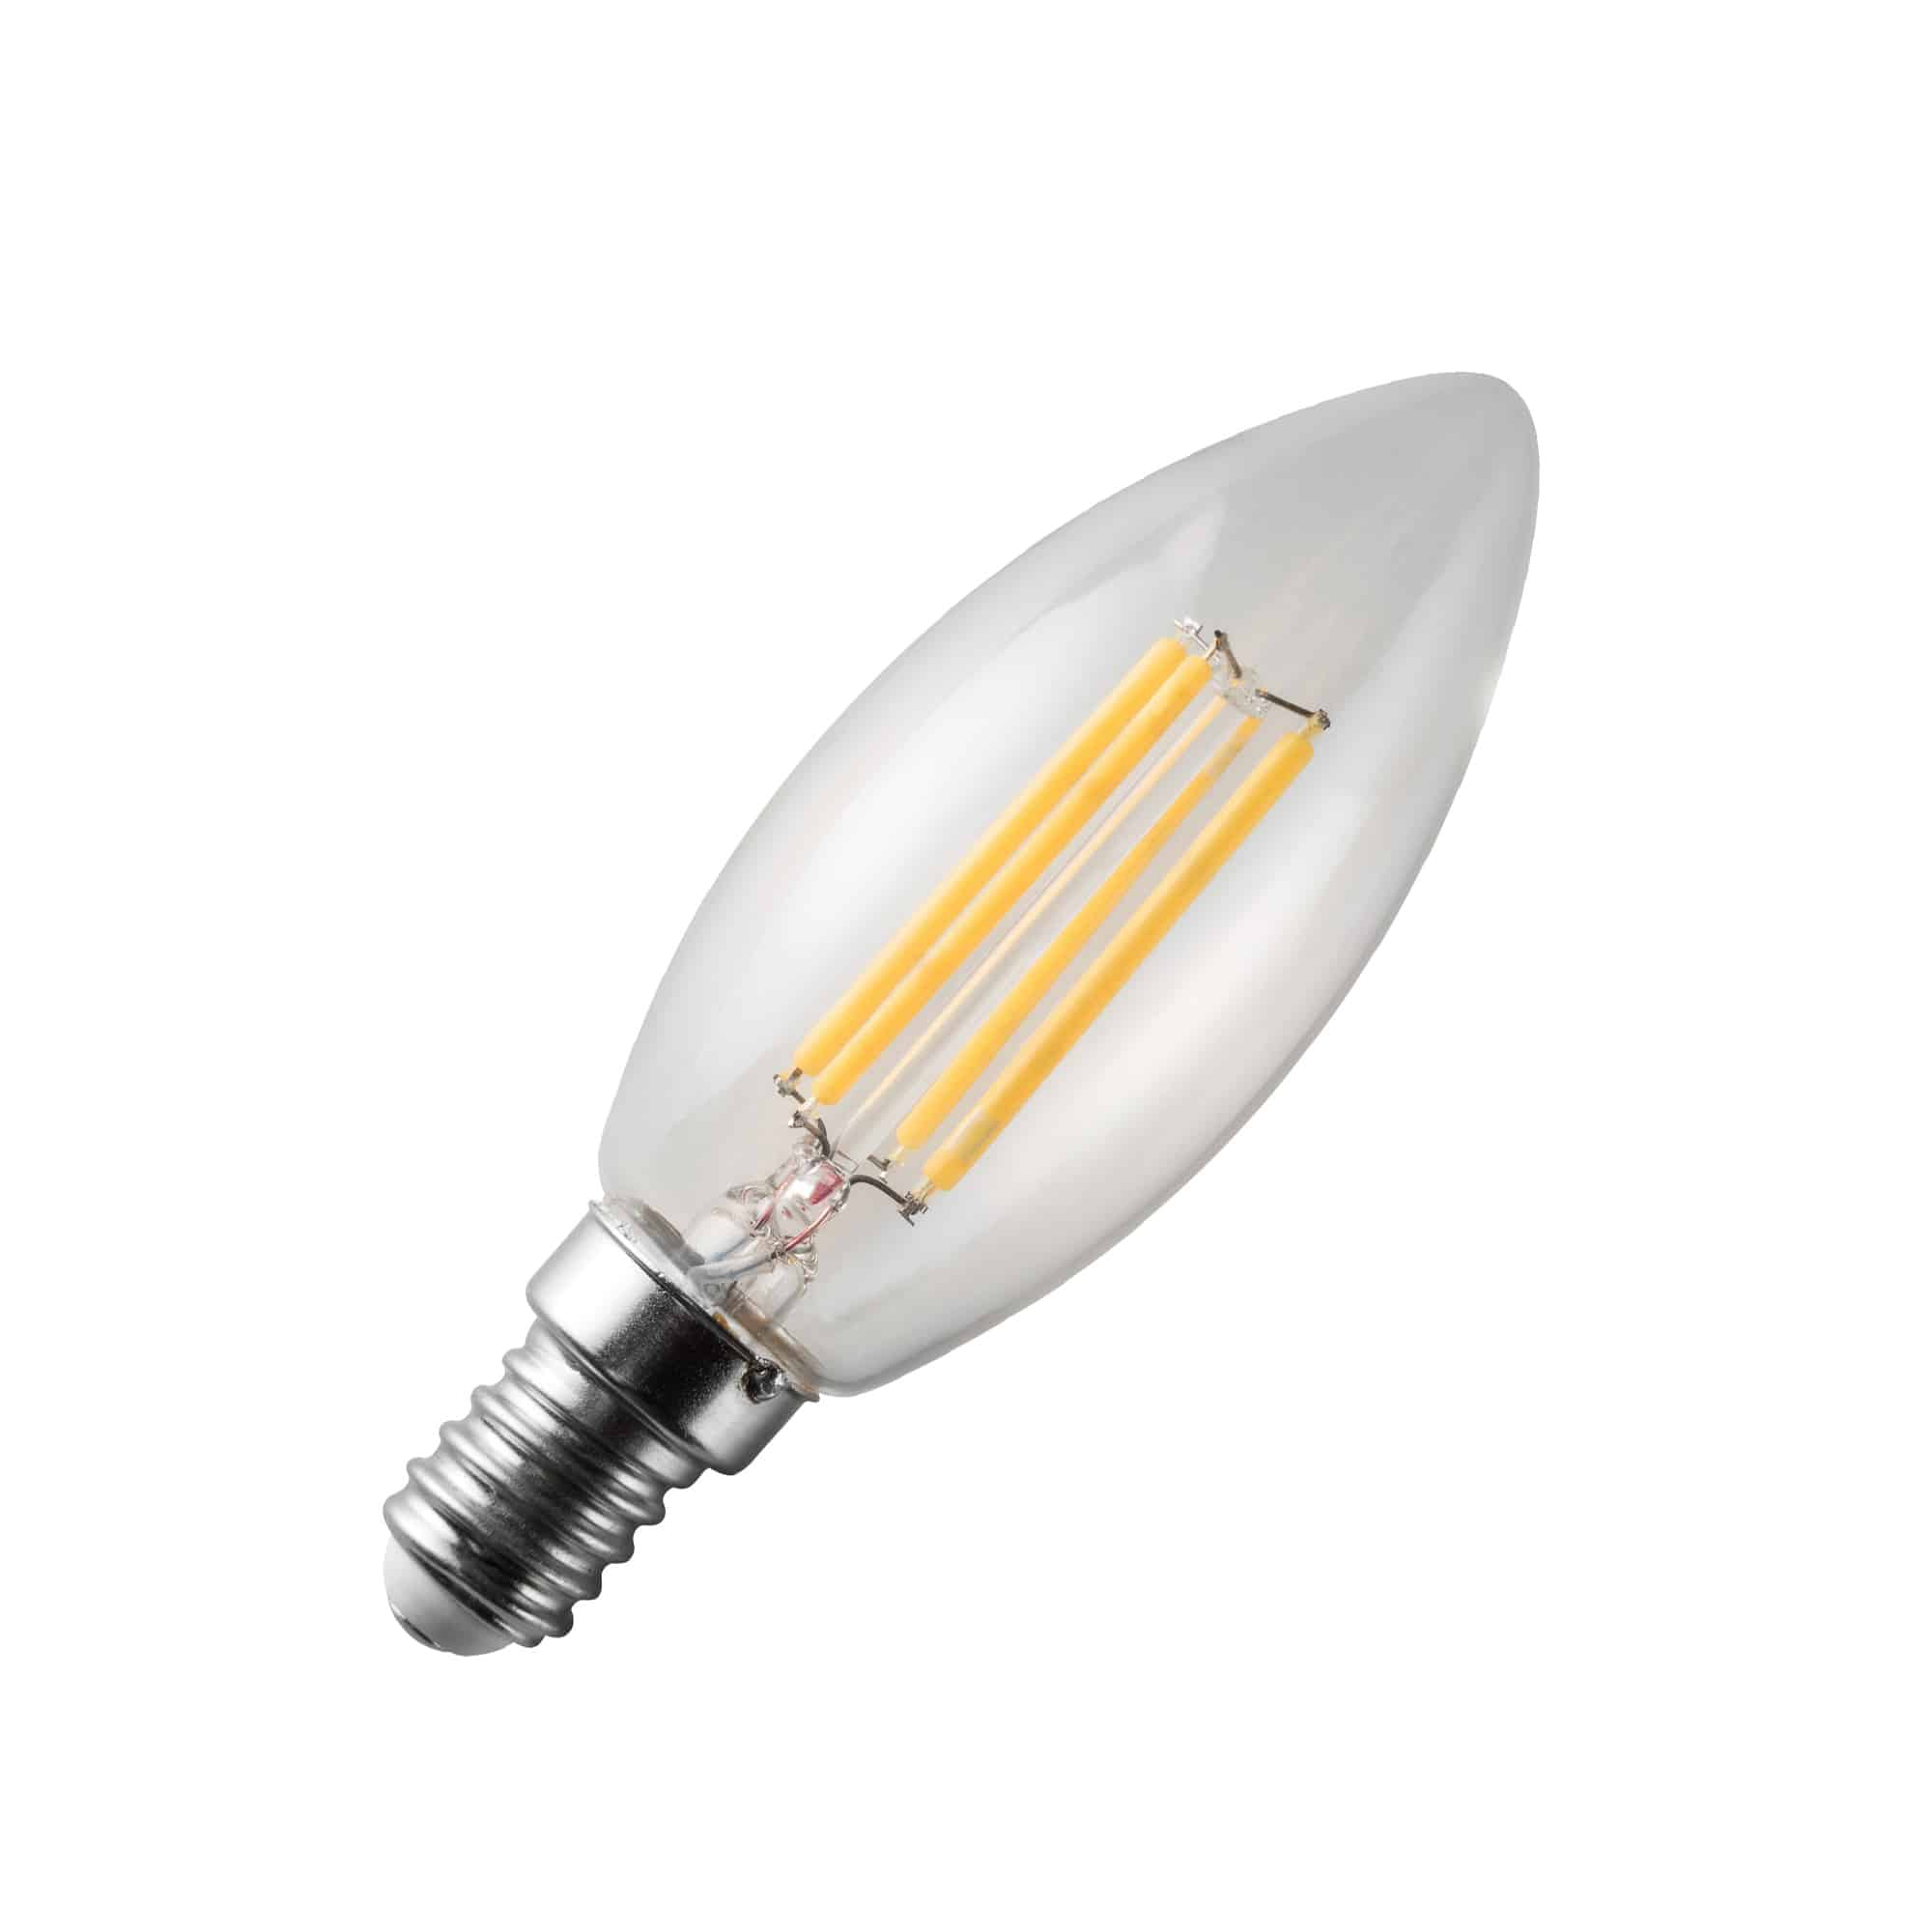 Offerta lampade led trendy offerta lampade led with for Lampadine led lexman